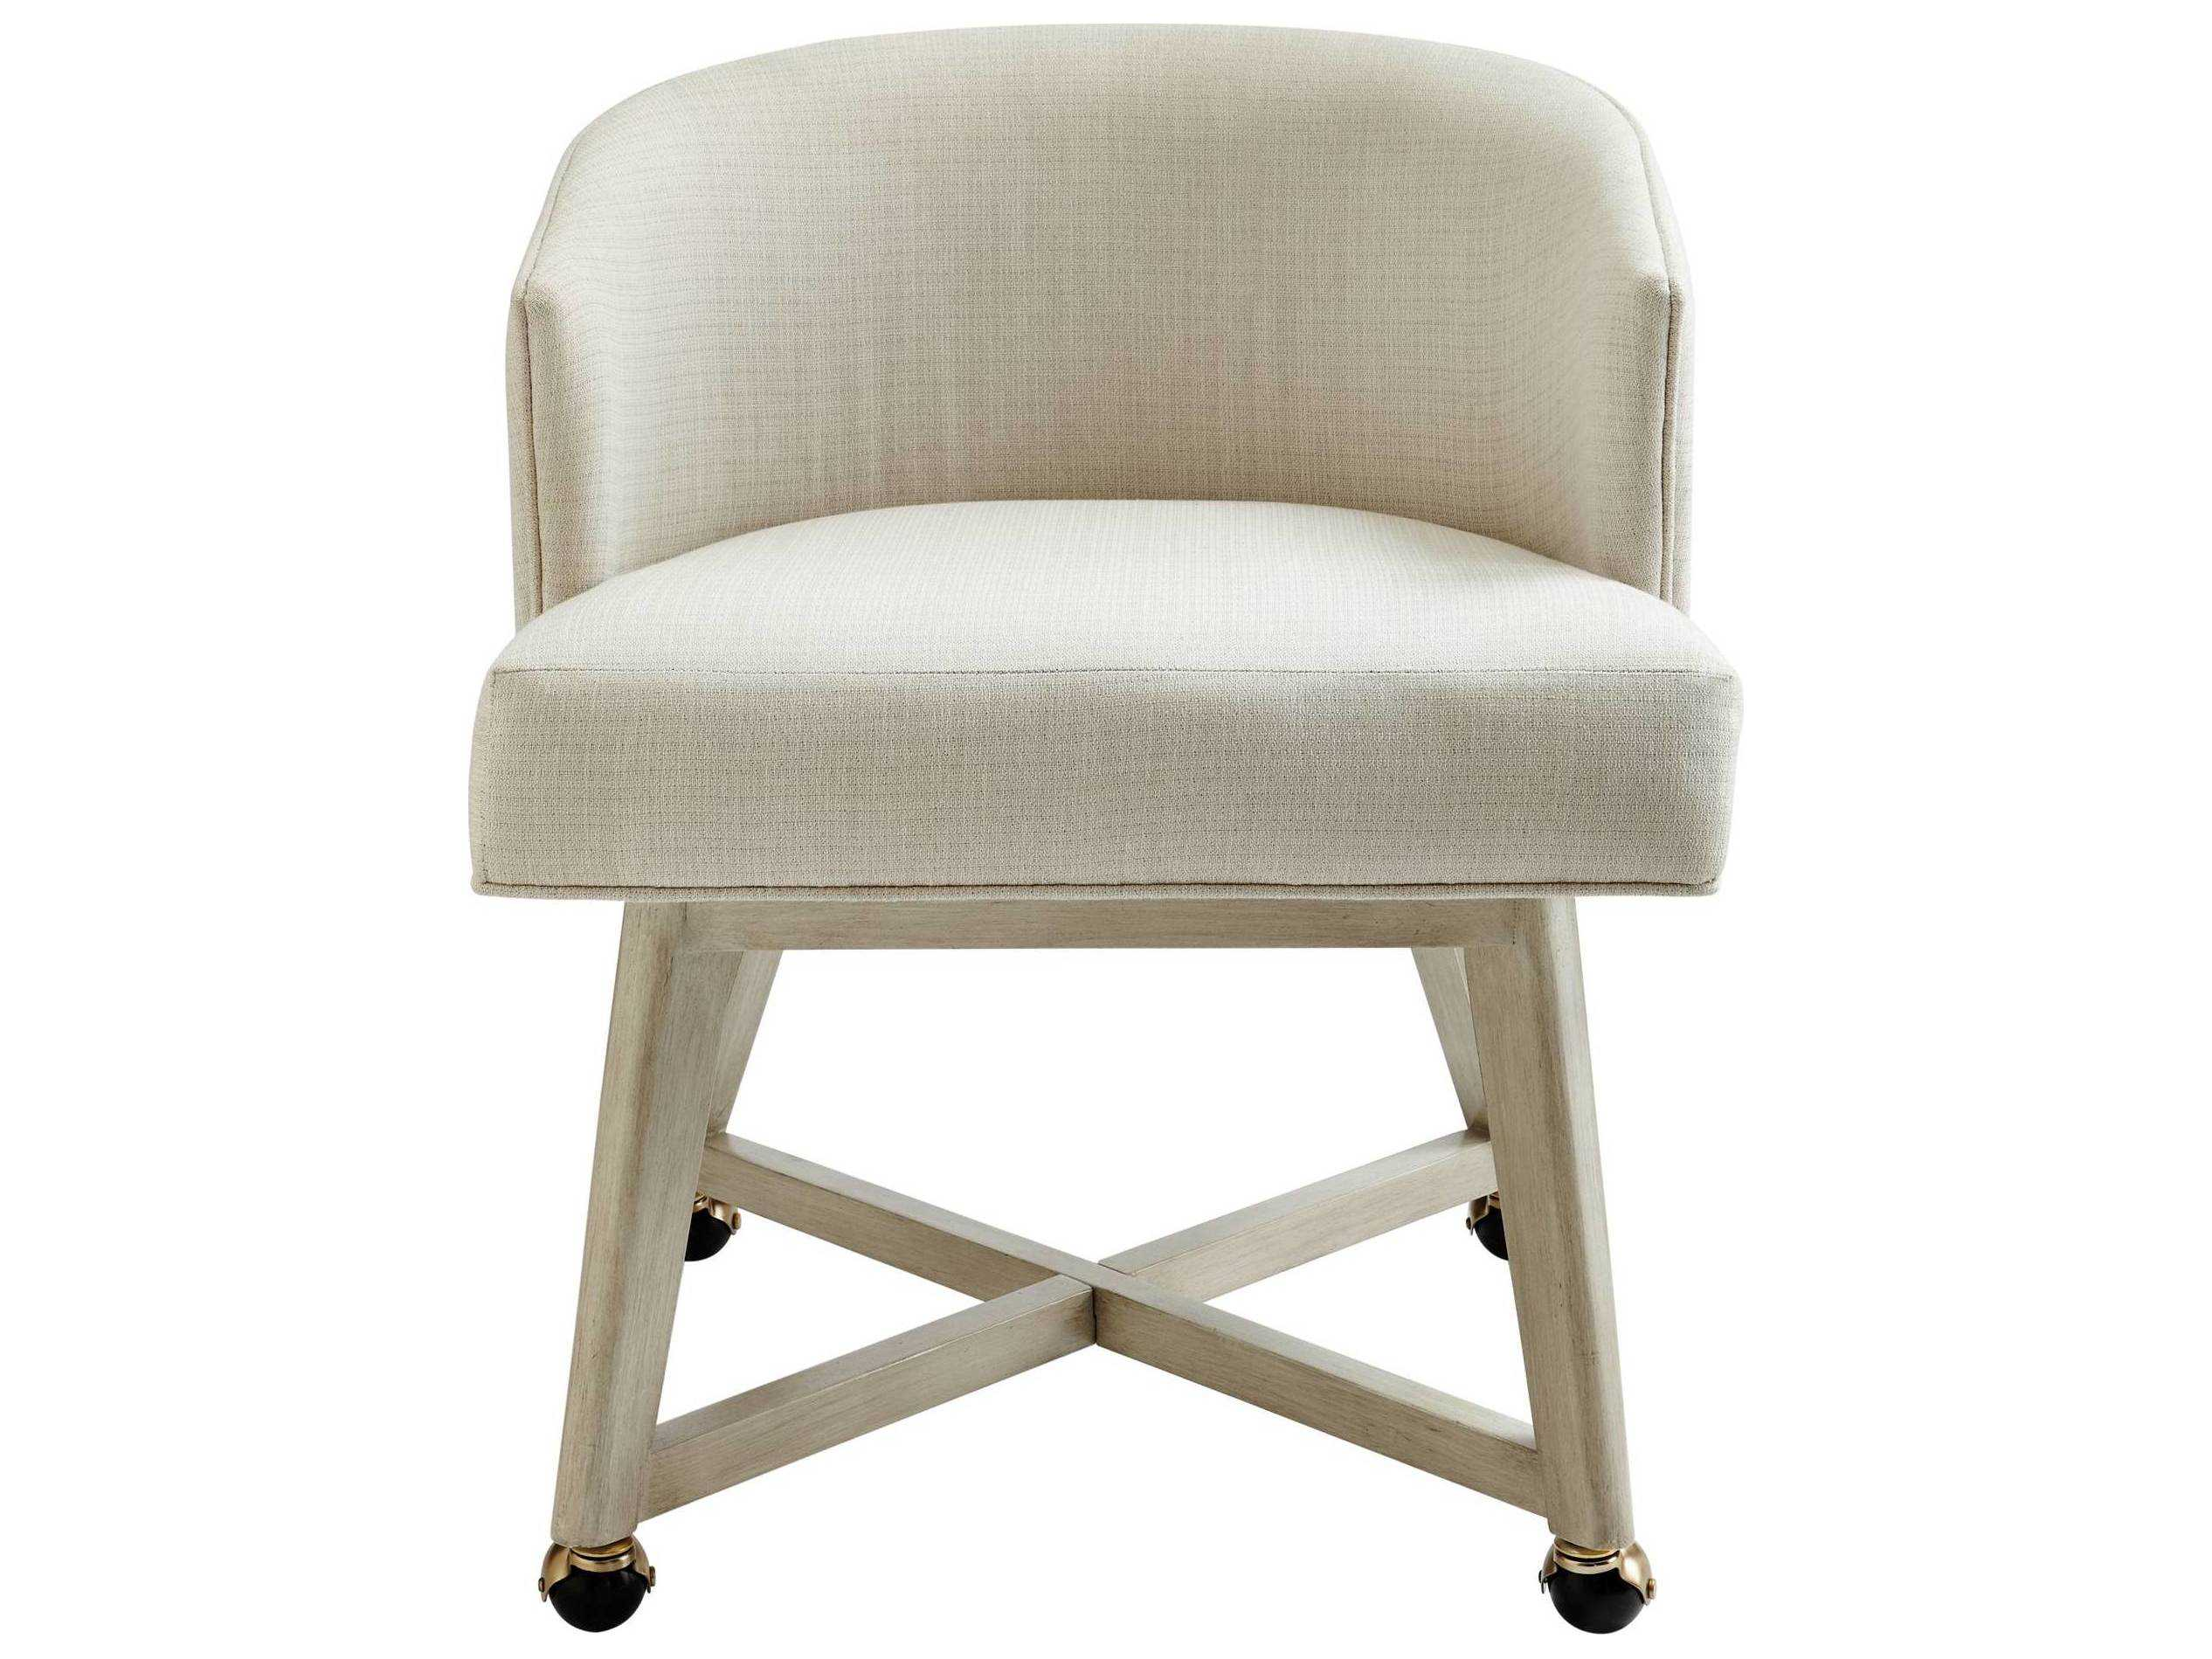 Coastal Chairs Stanley Furniture Coastal Living Oasis Oyster Carlyle